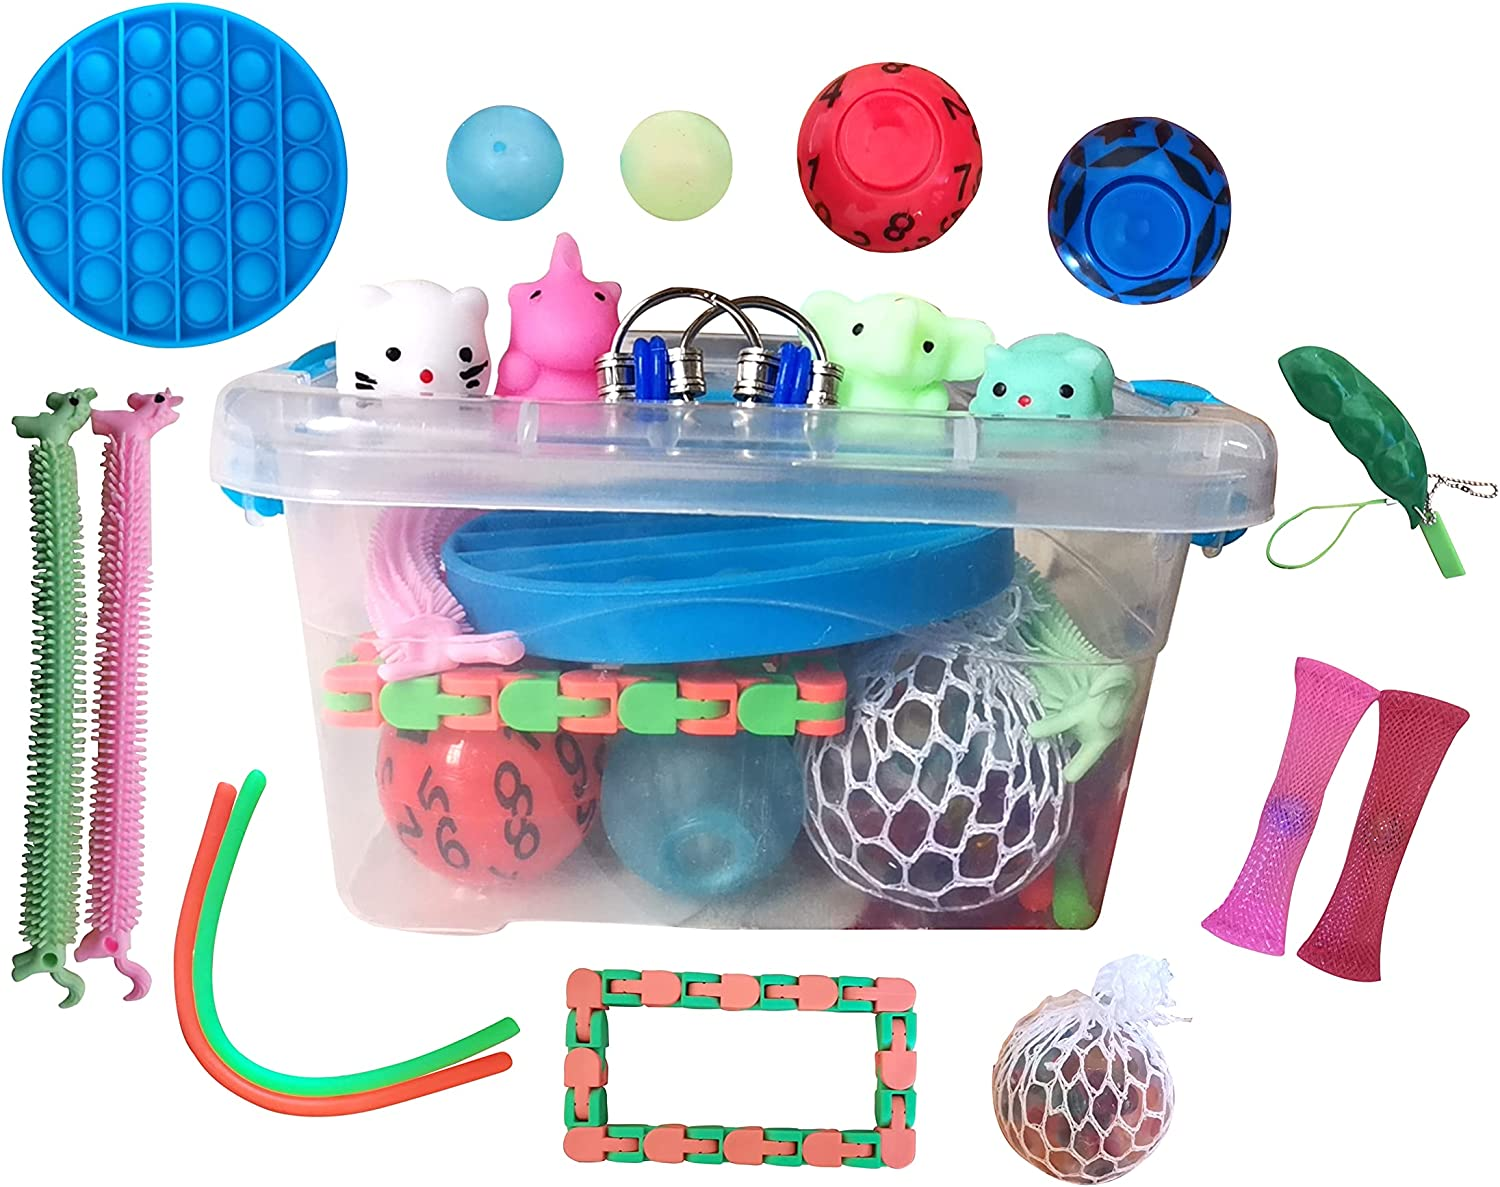 JHXXXL 20Pcs Sensory Fidget Toys Set, Relieves Stress and Anxiety Fidget Toy for Kids and Adults, Fidget pop,Stretchy String,Stress Balls for Party Favors, Classroom Rewards,